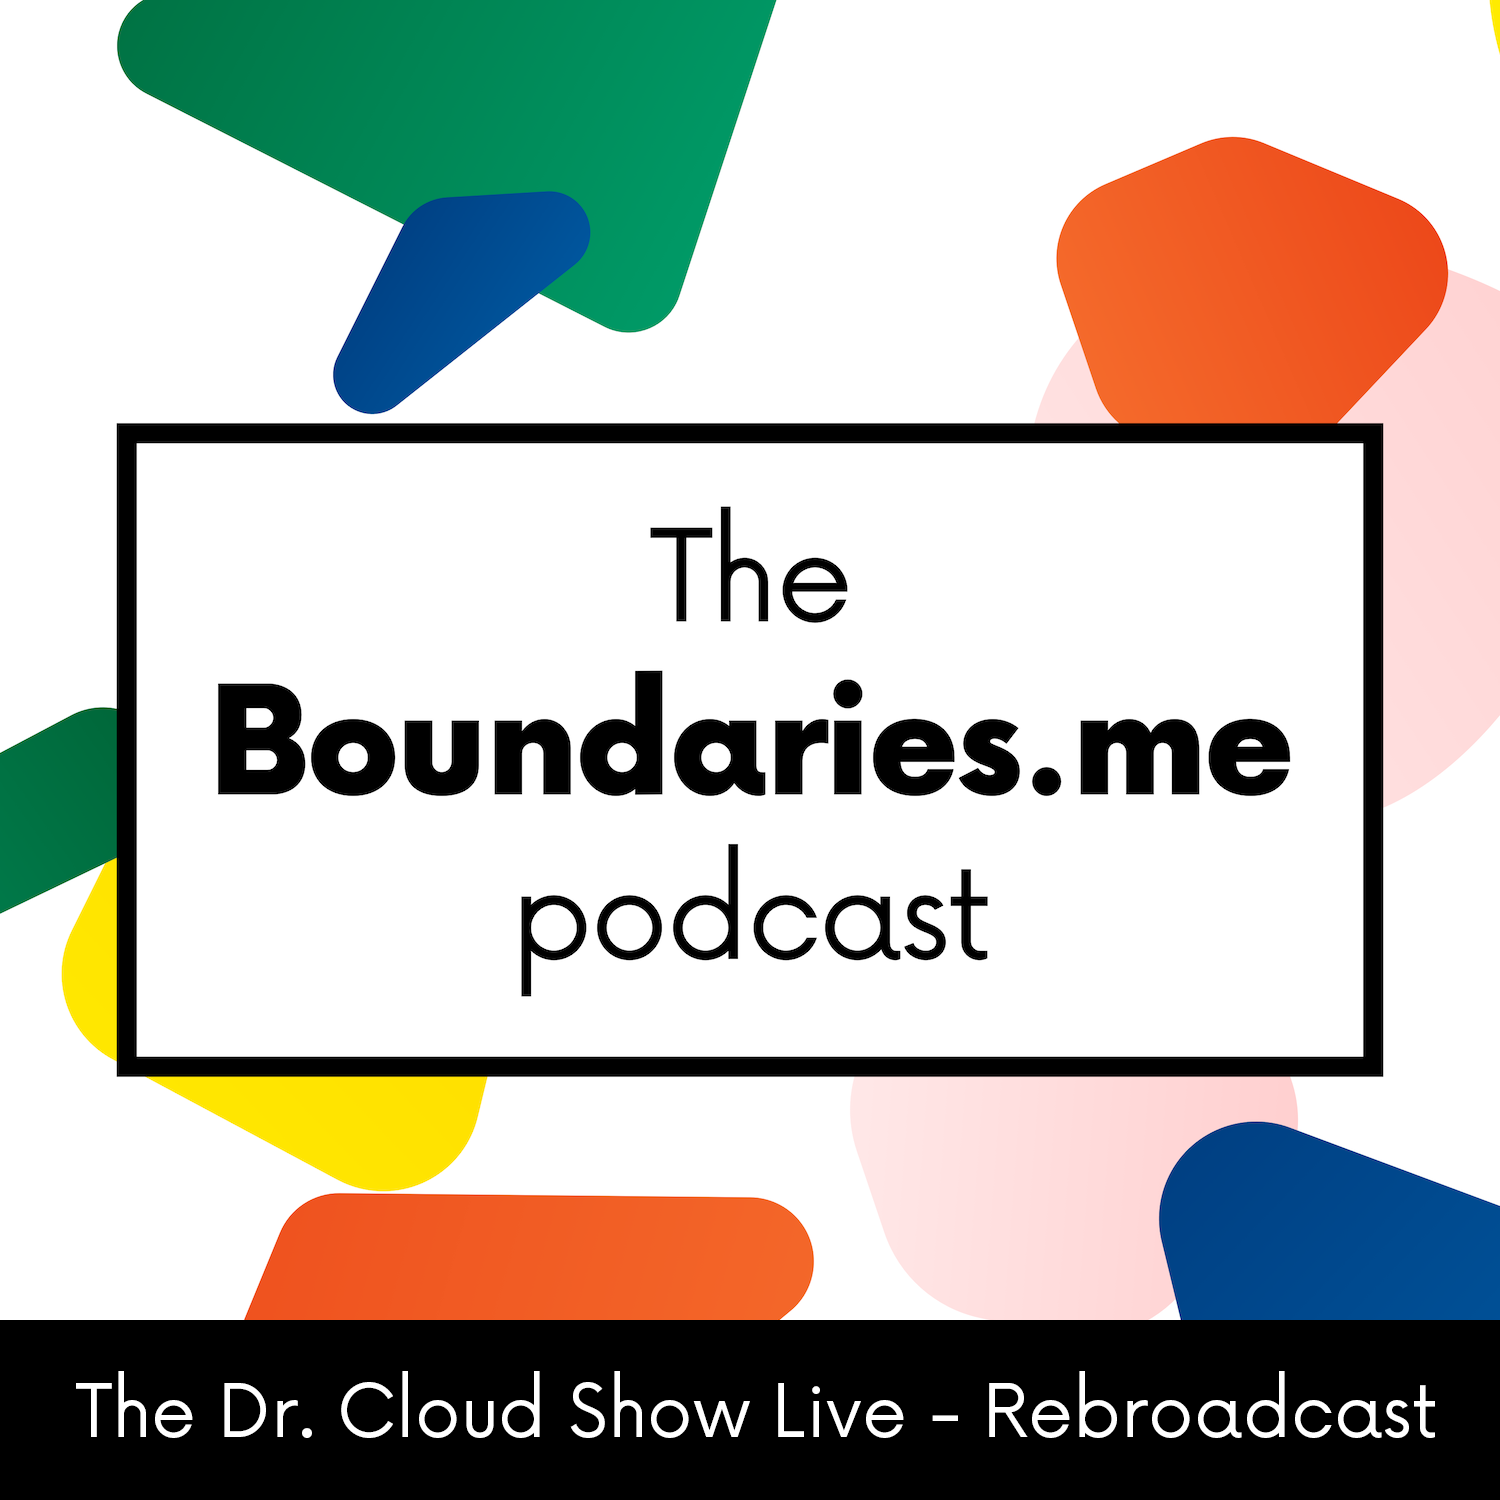 Episode 20 - The Dr Cloud Show Live - Getting Above Our Routine